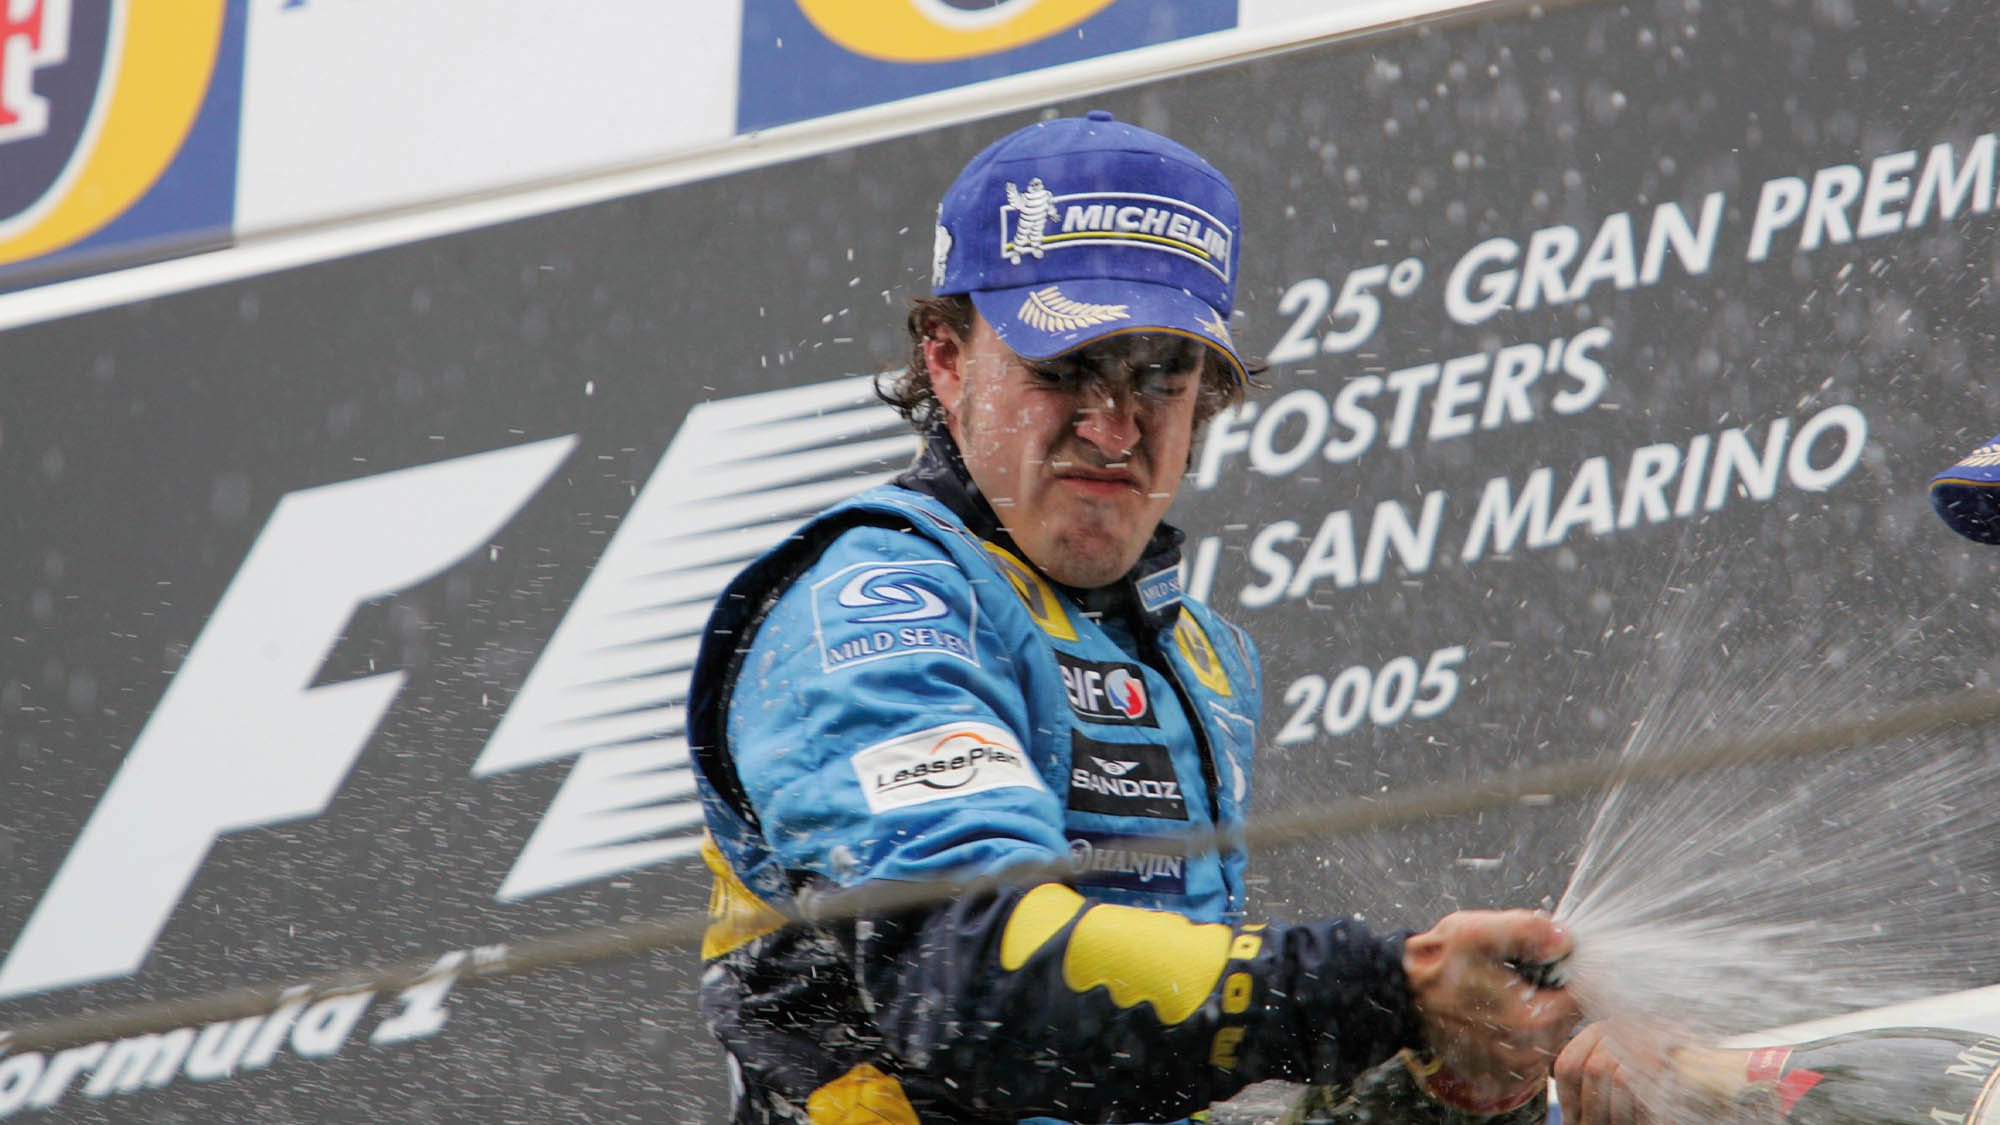 FErnando Alonso celebrates winning the 2005 San MArino Grand Prix with champagne on the podium at Imola